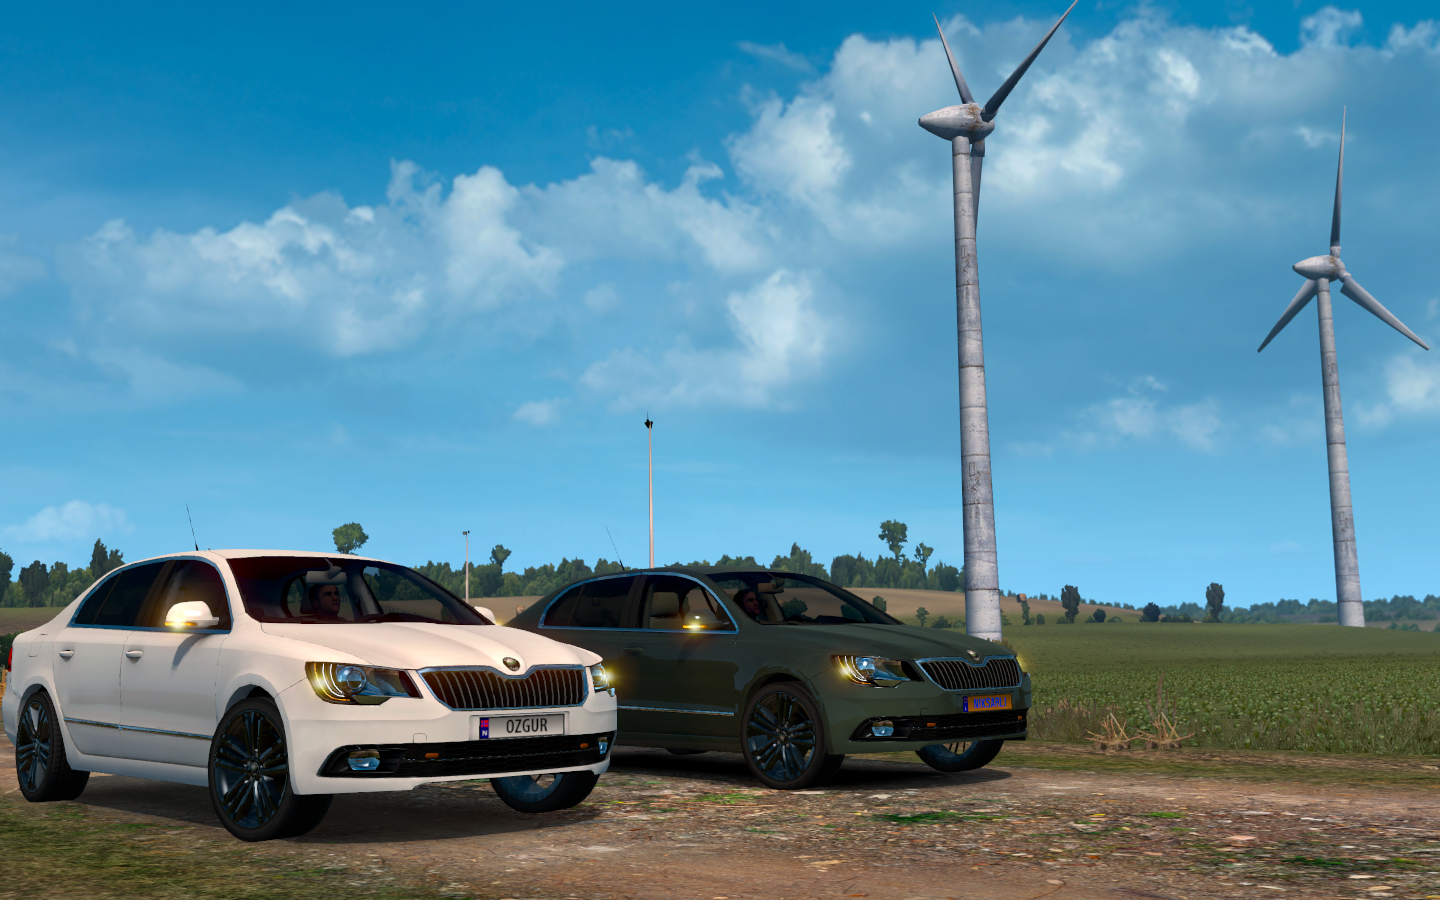 ets2_20190418_204841_00.png